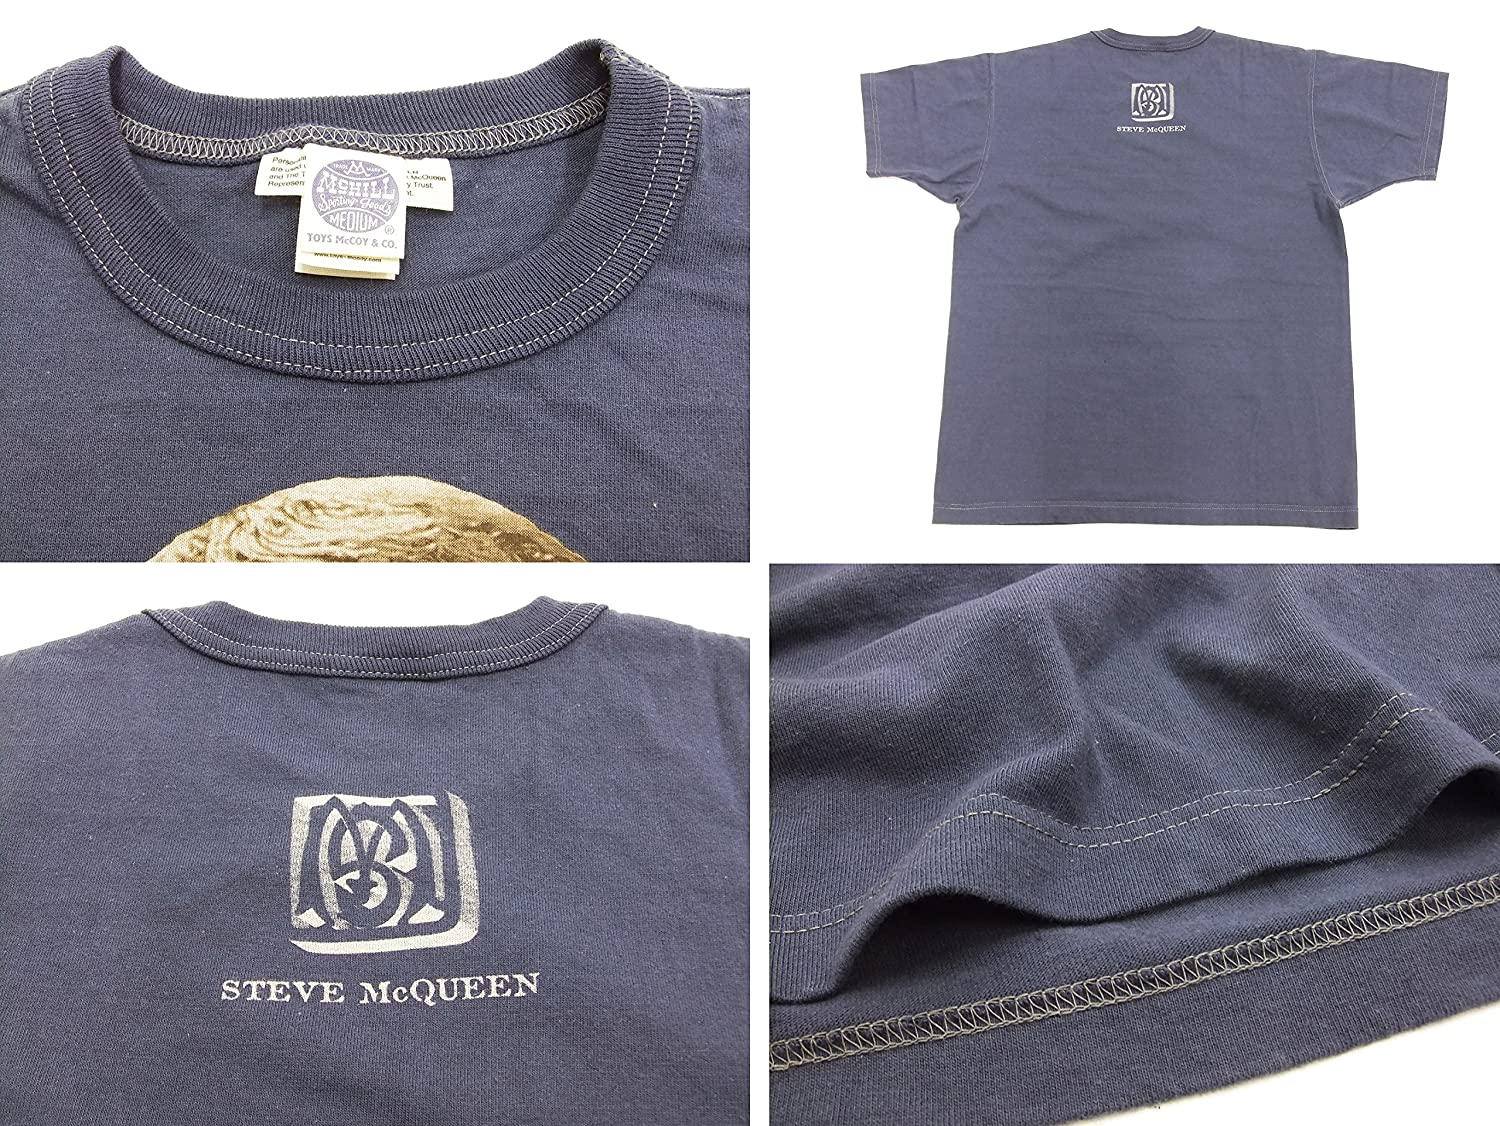 819c7c3265d8 Amazon.com: TOYS McCOY Men's Slim Fit T-Shirt Steve McQueen Graphic Short  Sleeve Tee TMC1804: Clothing